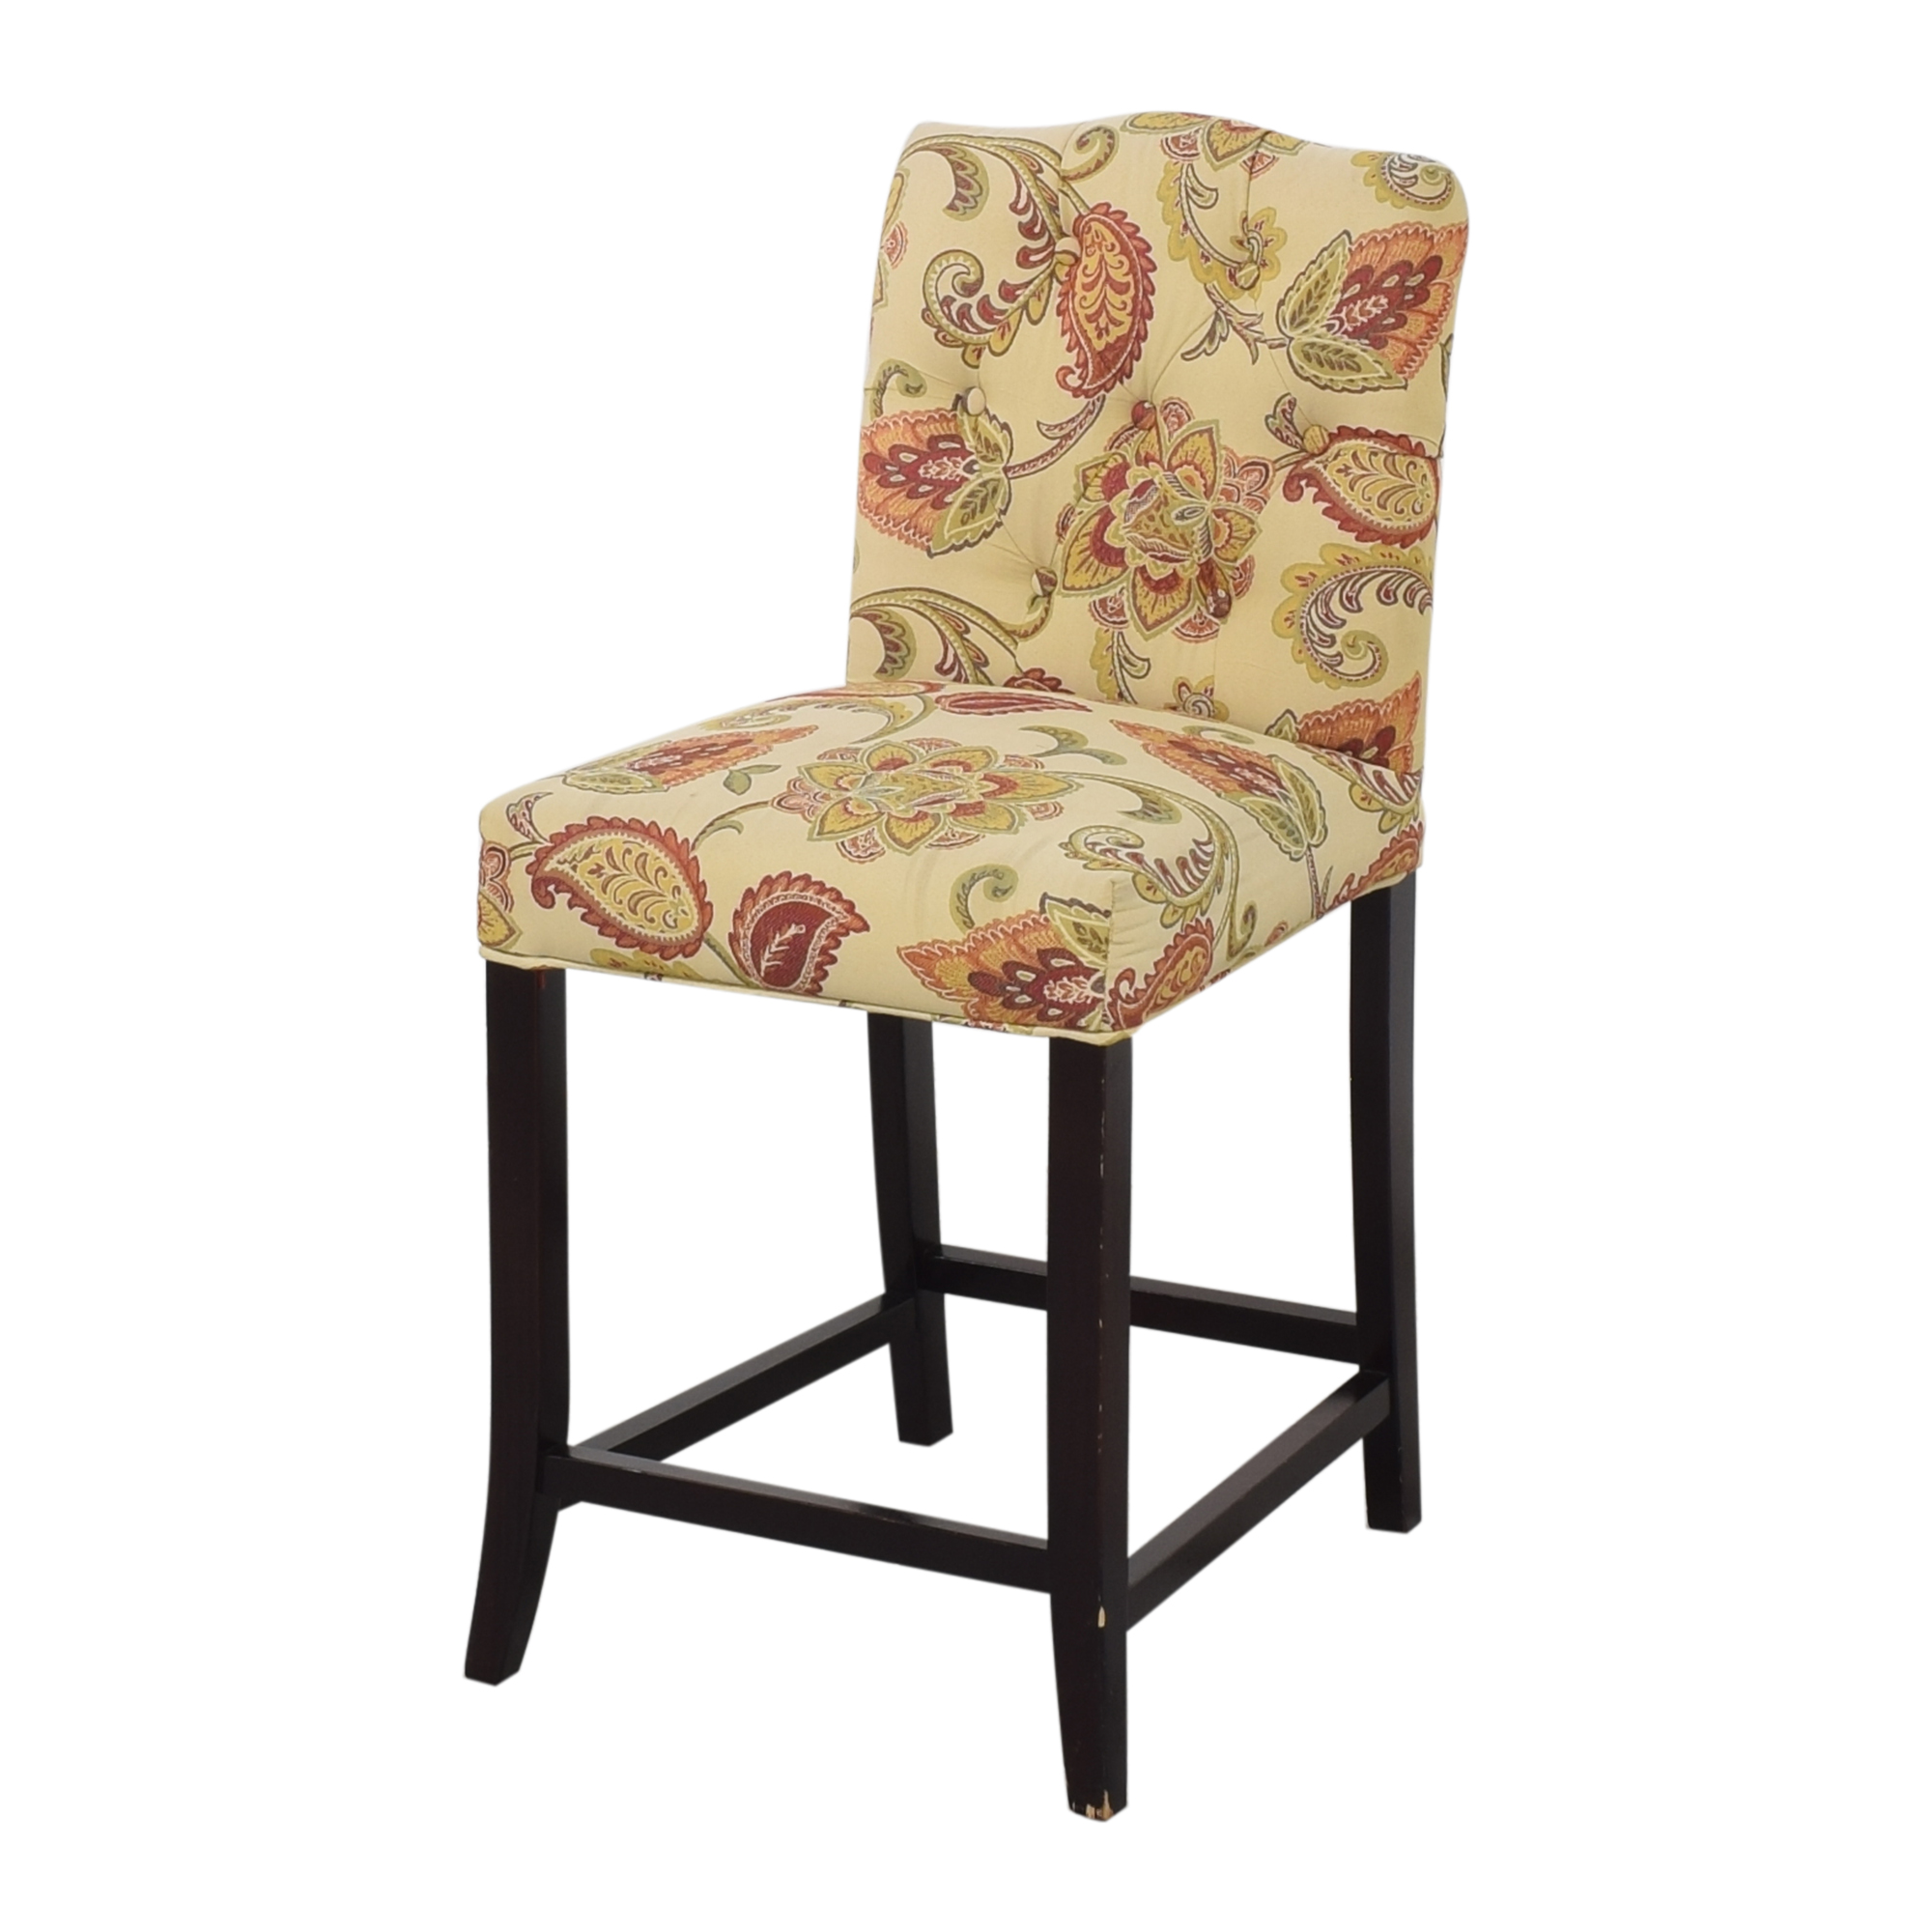 Pier 1 Pier 1 Upholstered Counter Stool Stools